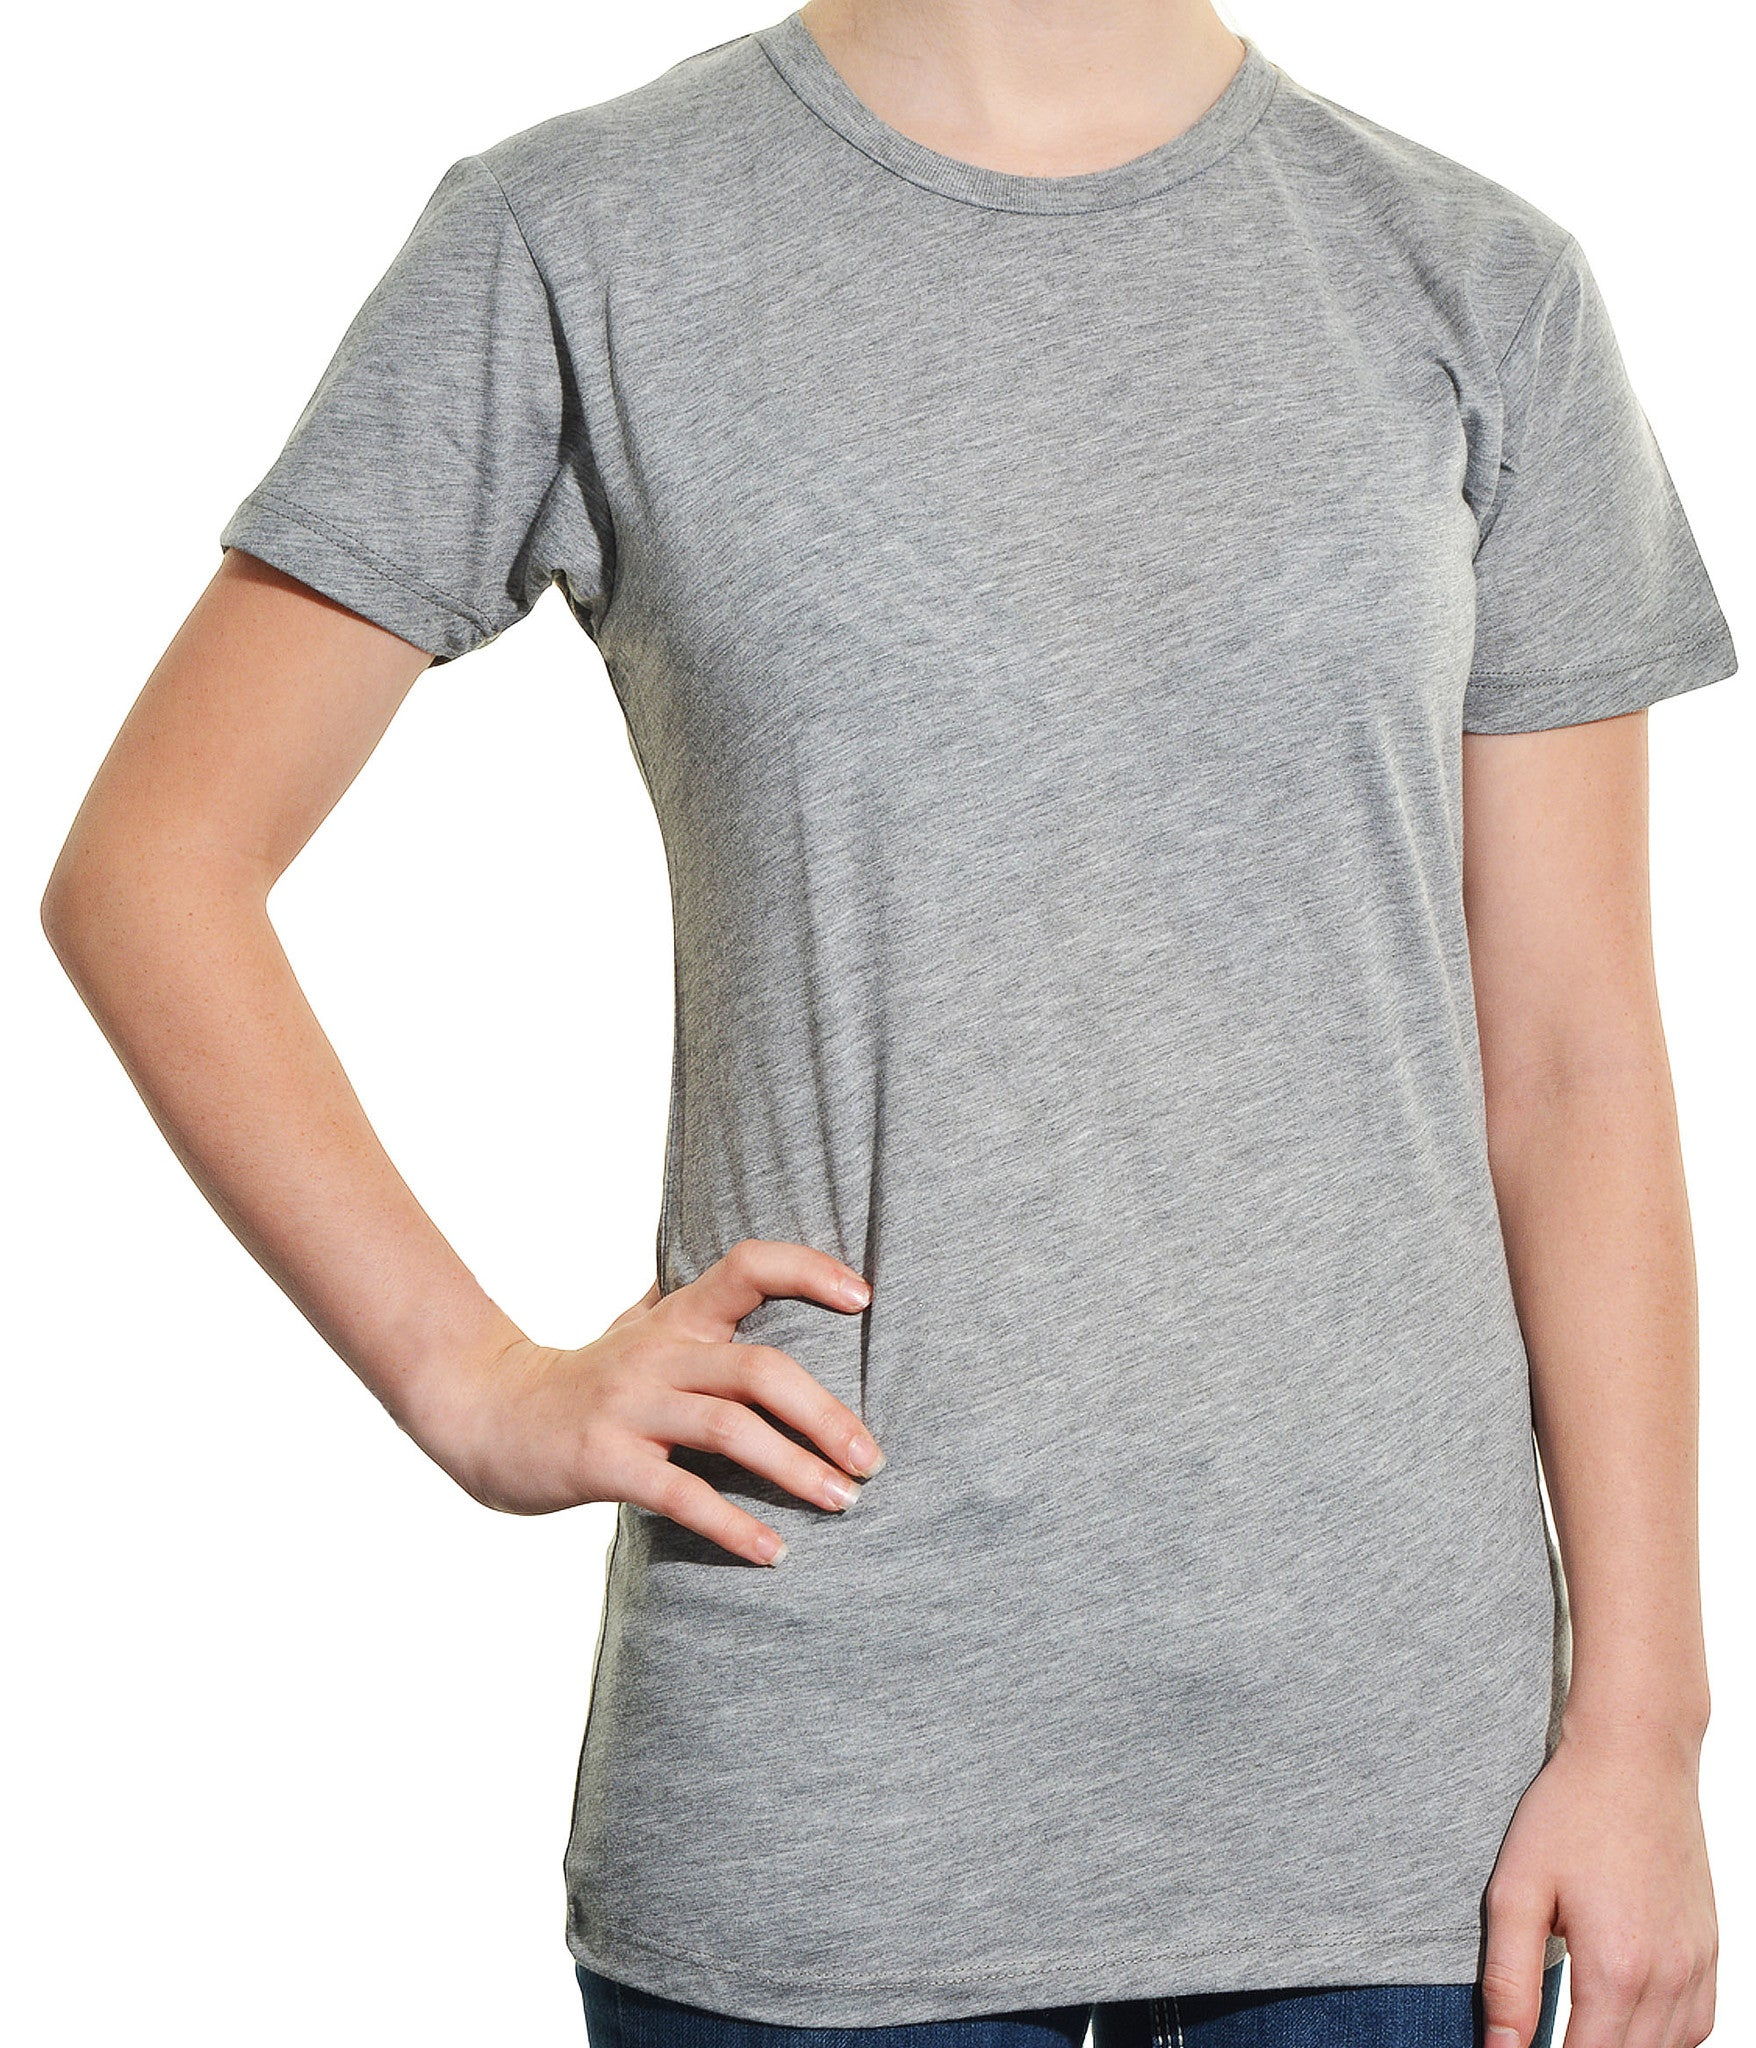 Alternative Apparel Crew Neck Short Sleeves Tee Shirt | Heather Gray